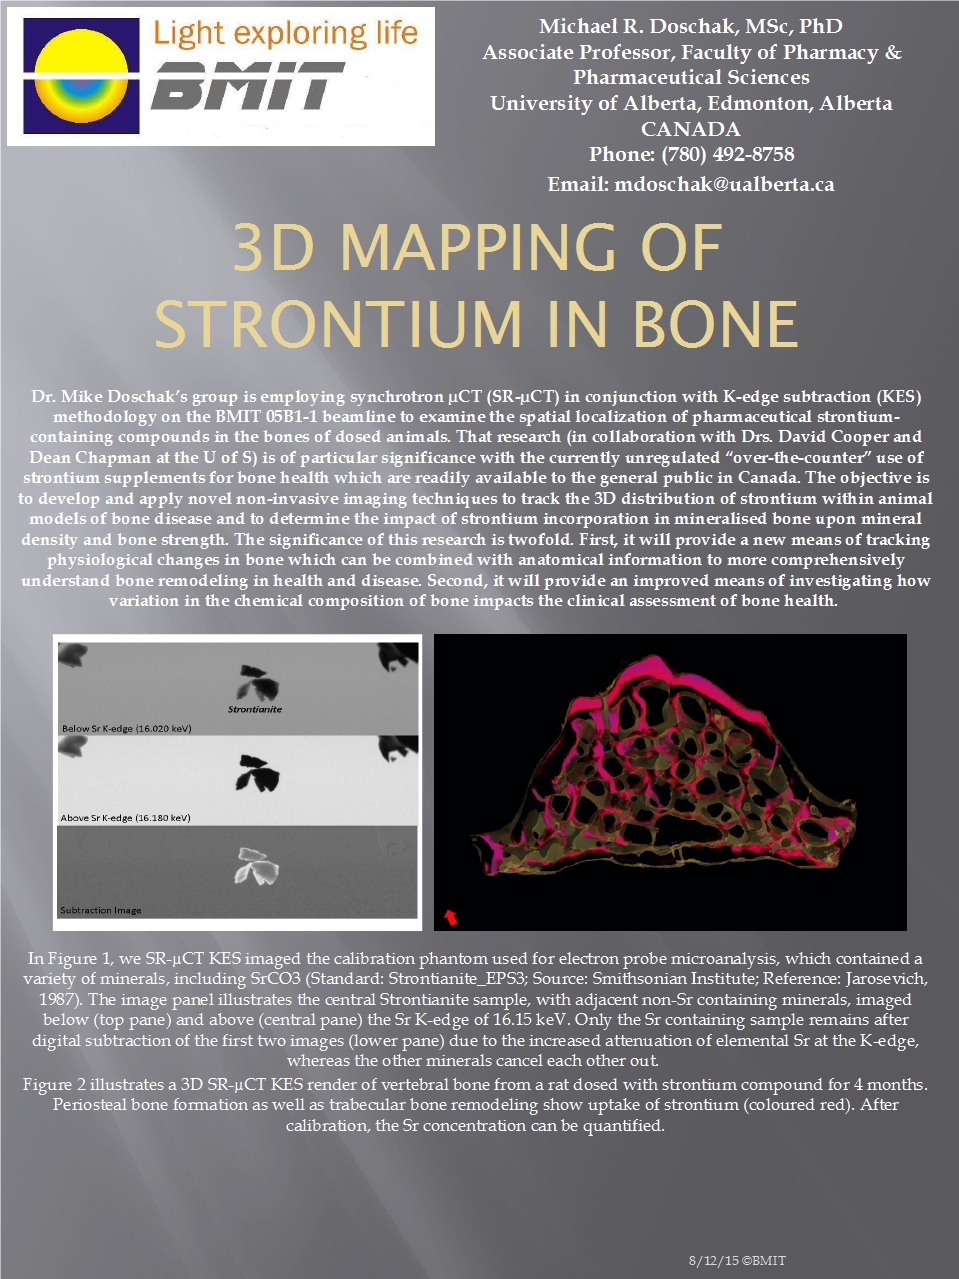 3D Mapping Of Strontium in Bone Image